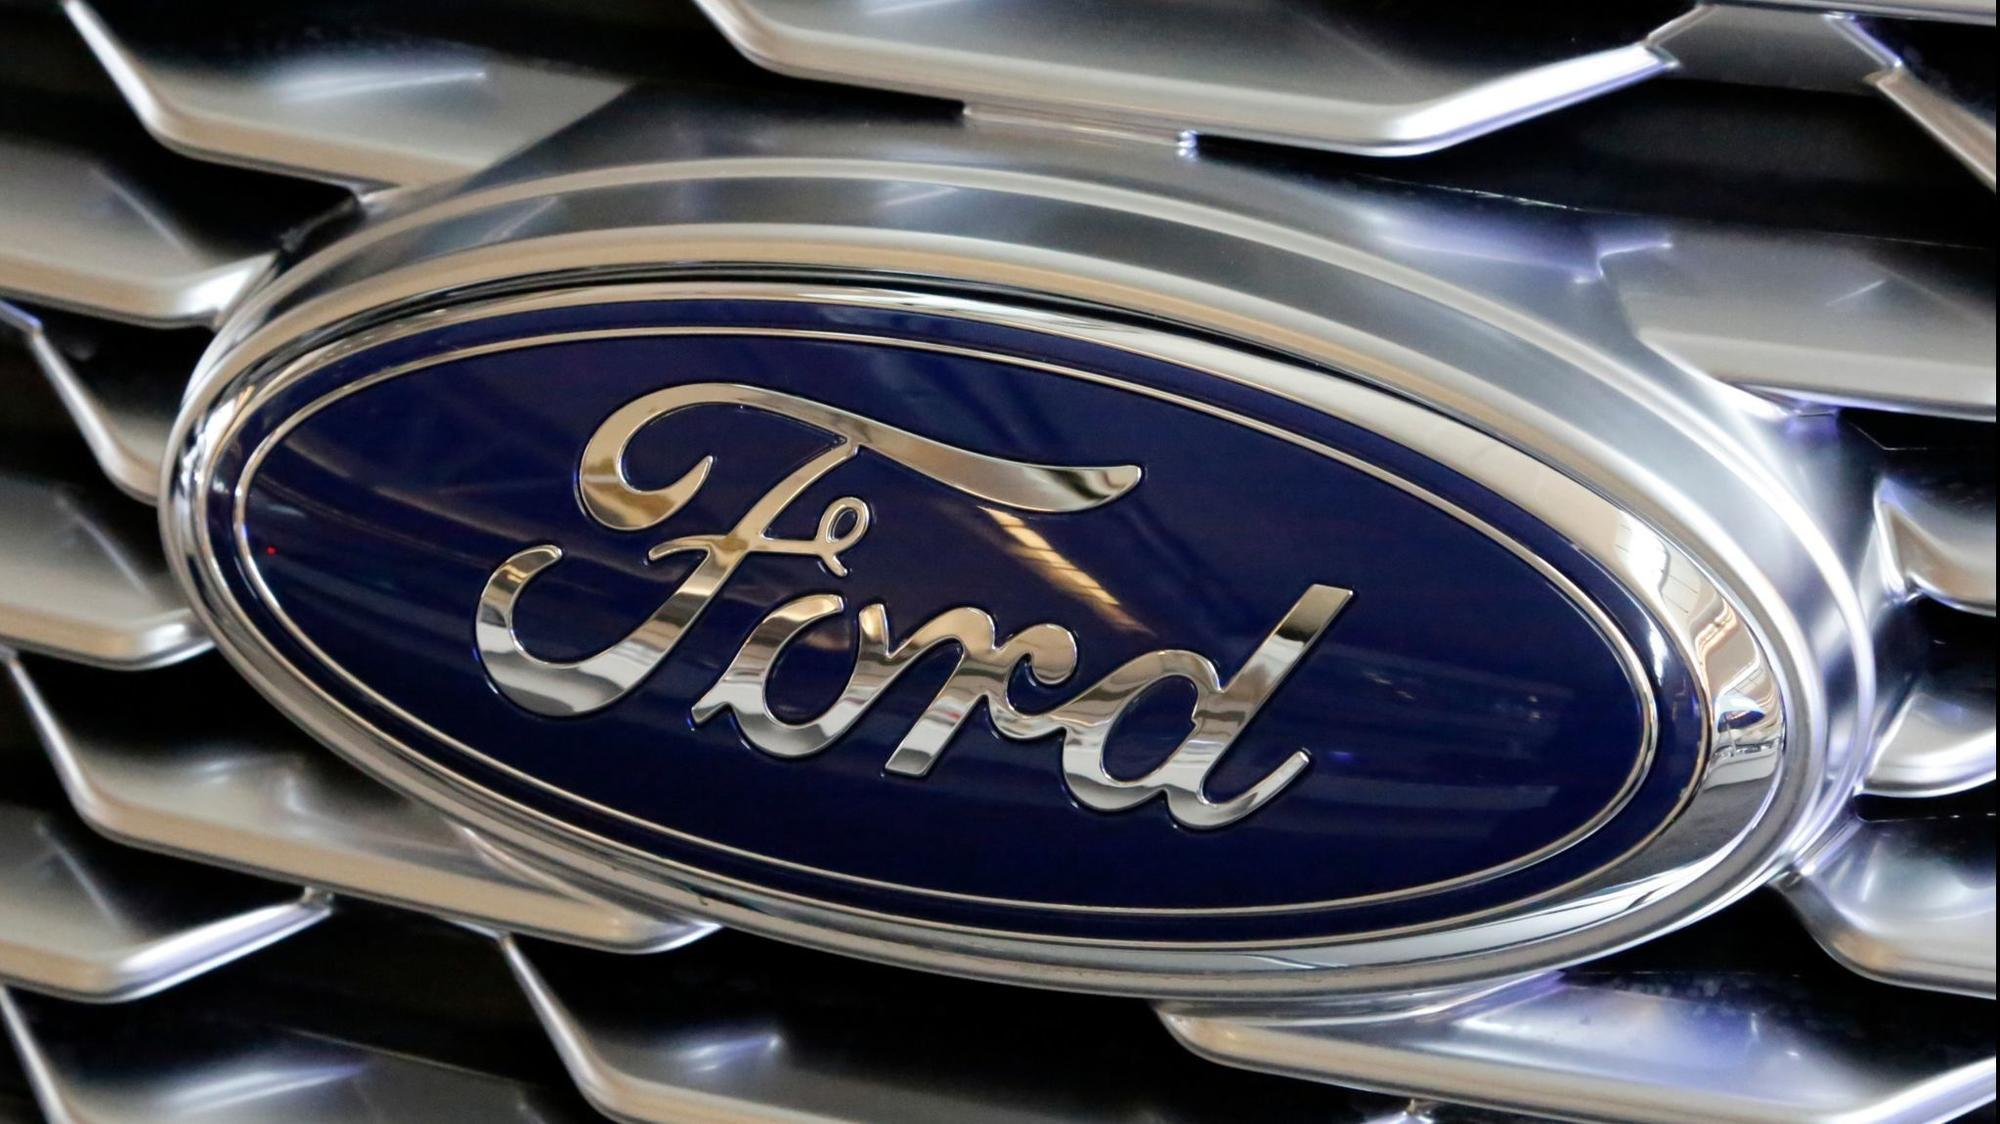 Ford is ditching these car models lehigh valley business cycle